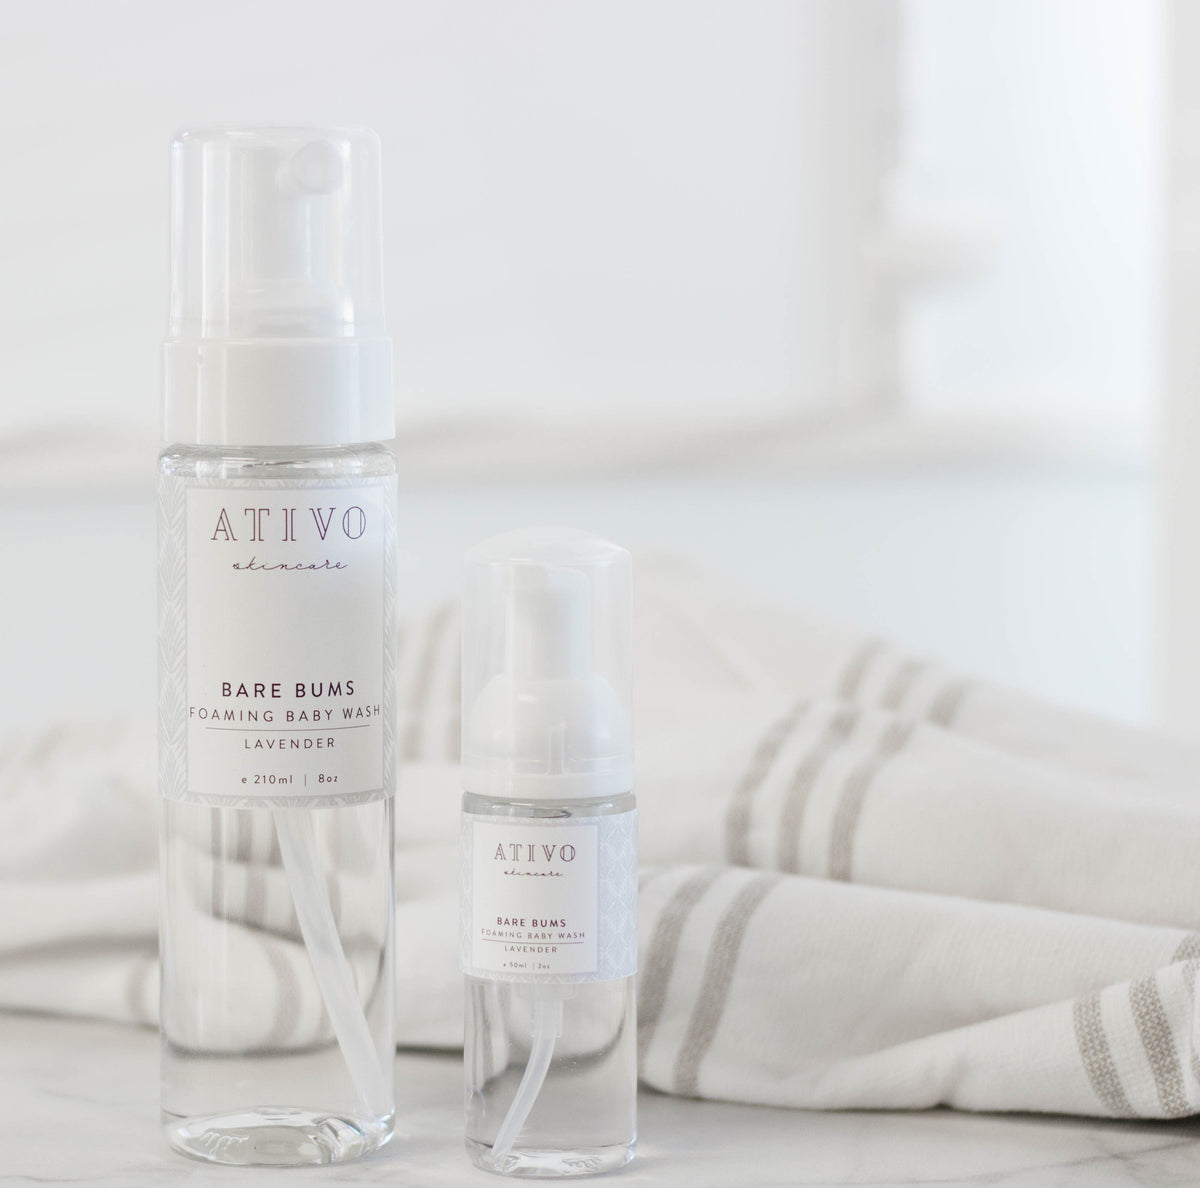 Bare Bums Foaming Baby Wash - Ativo Skincare